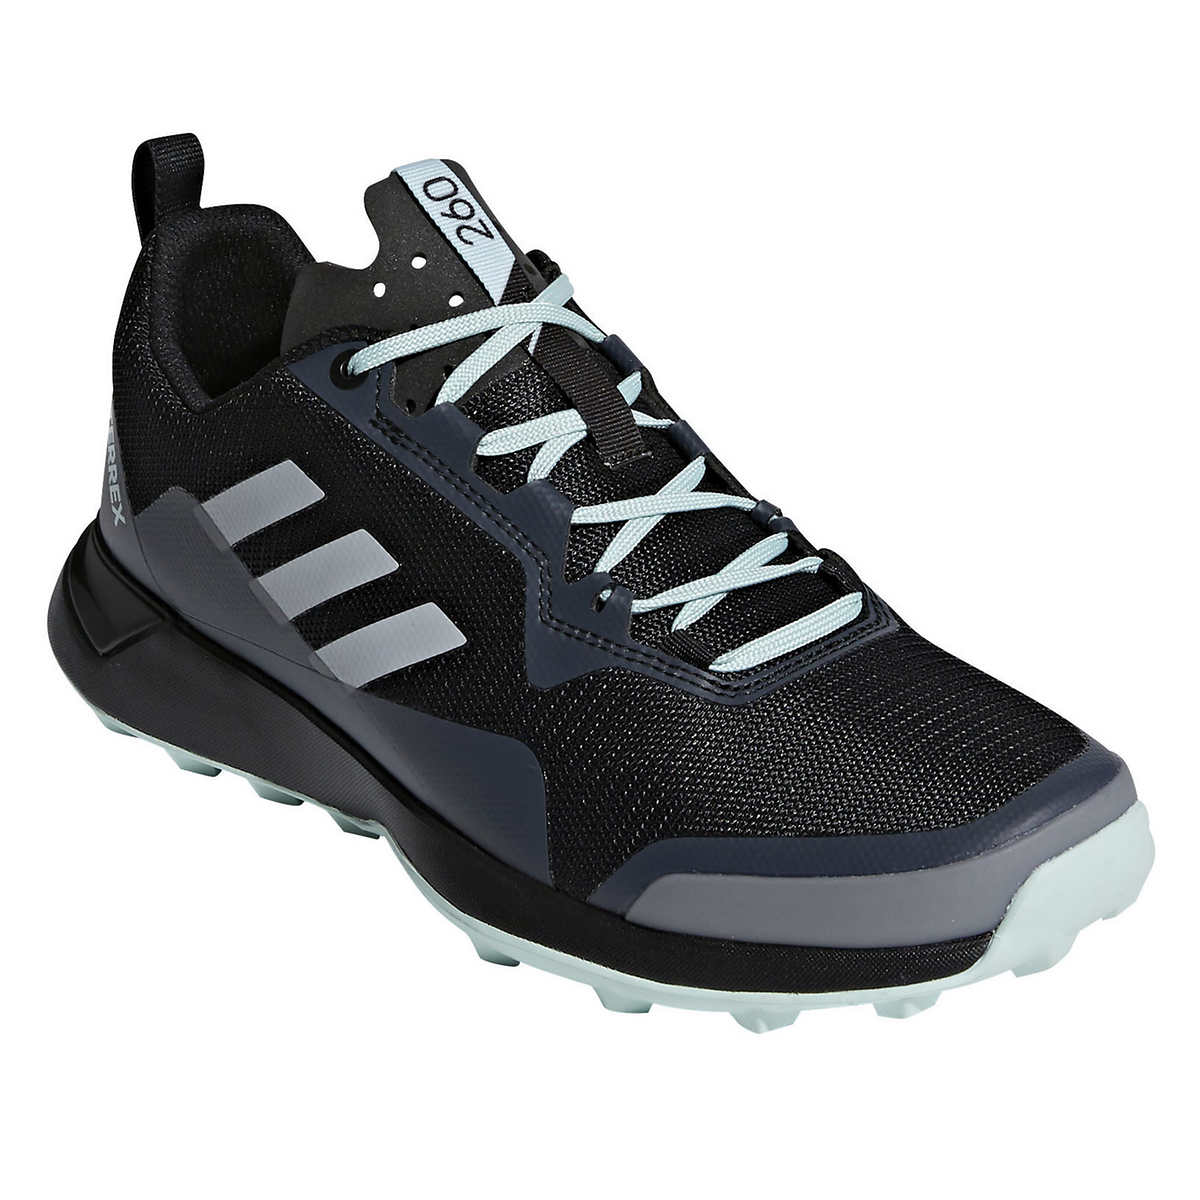 a2f3f72a3f18 adidas Ladies Outdoor Shoe